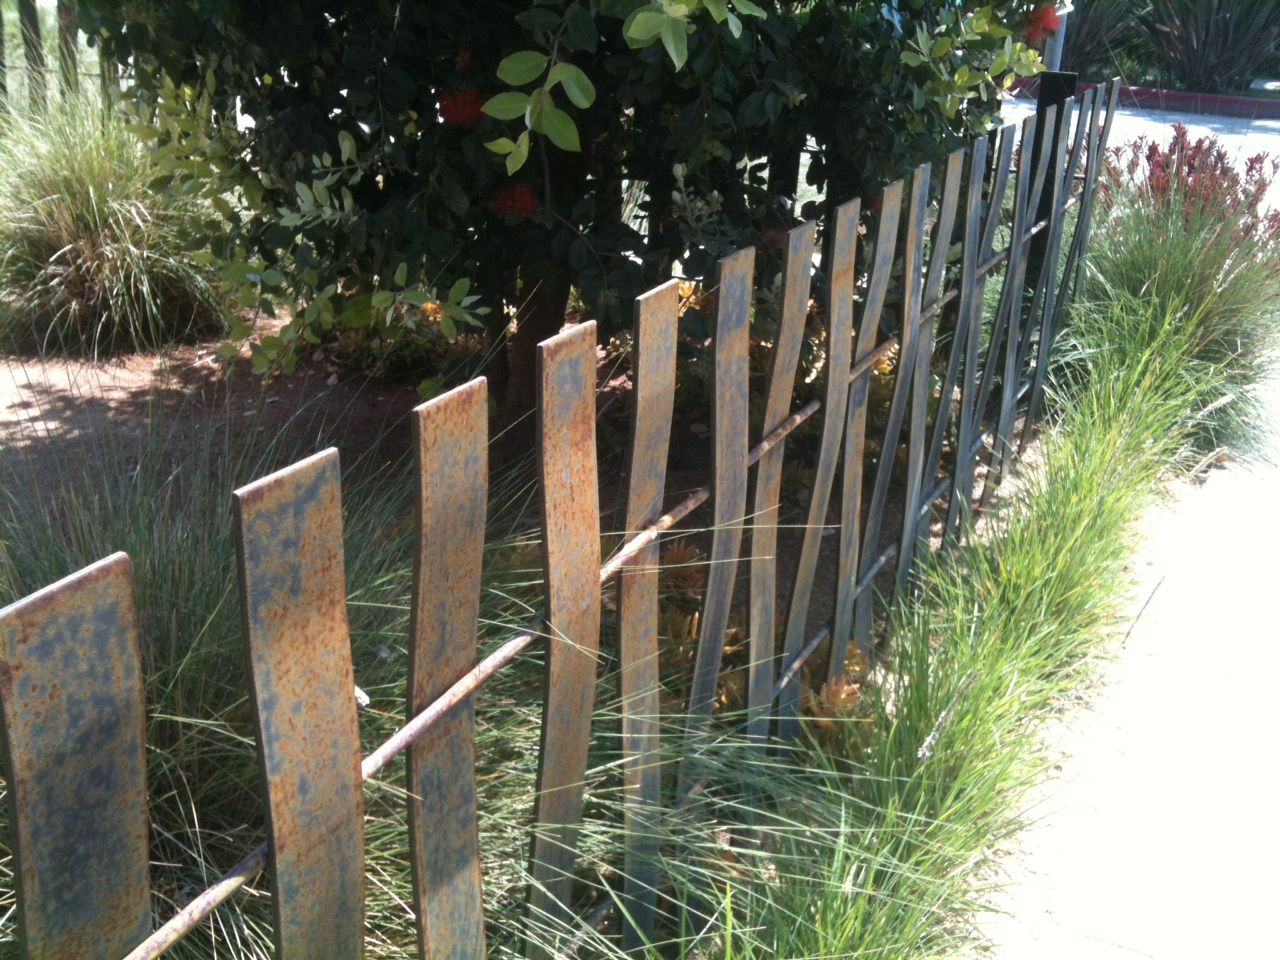 artistic metal fence in Venice Beach, CA